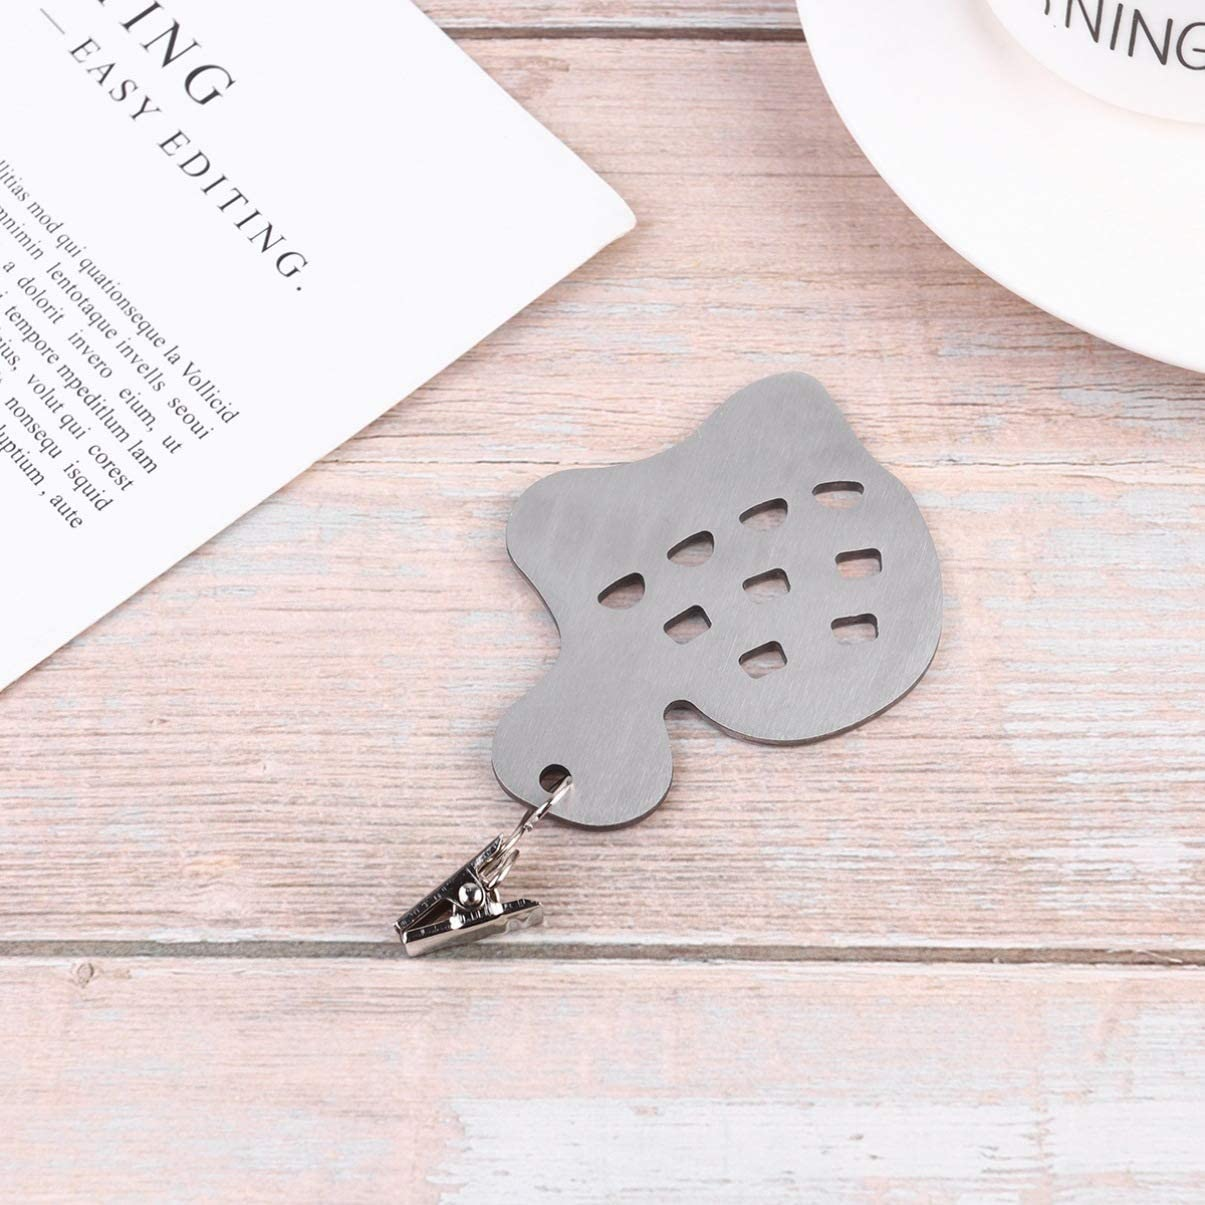 Leaf Pattern Cabilock 4pcs Tablecloth Weights with Metal Table Clip Clamps Stainless Steel Tablecloth Clips for Outdoor Garden Party Picnic Table Covers